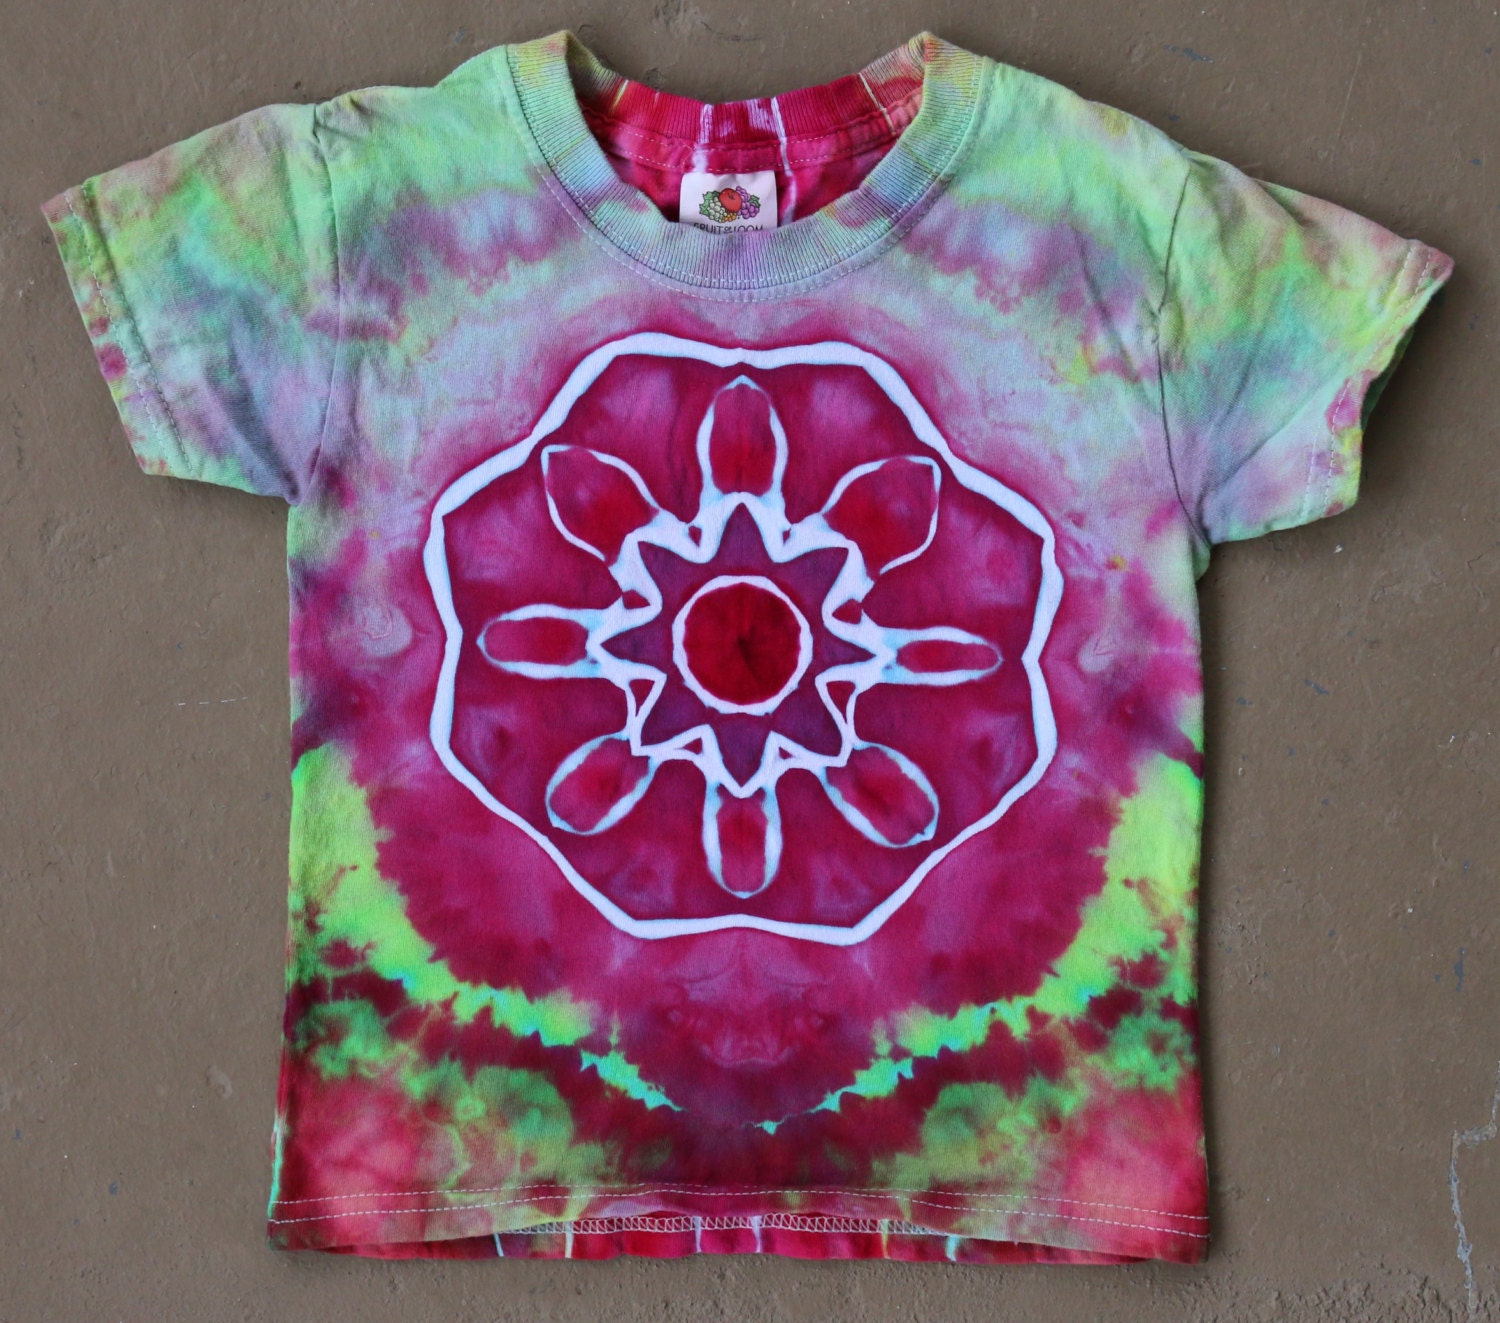 Ideas For Tie Dye Shirts Bcd Tofu House